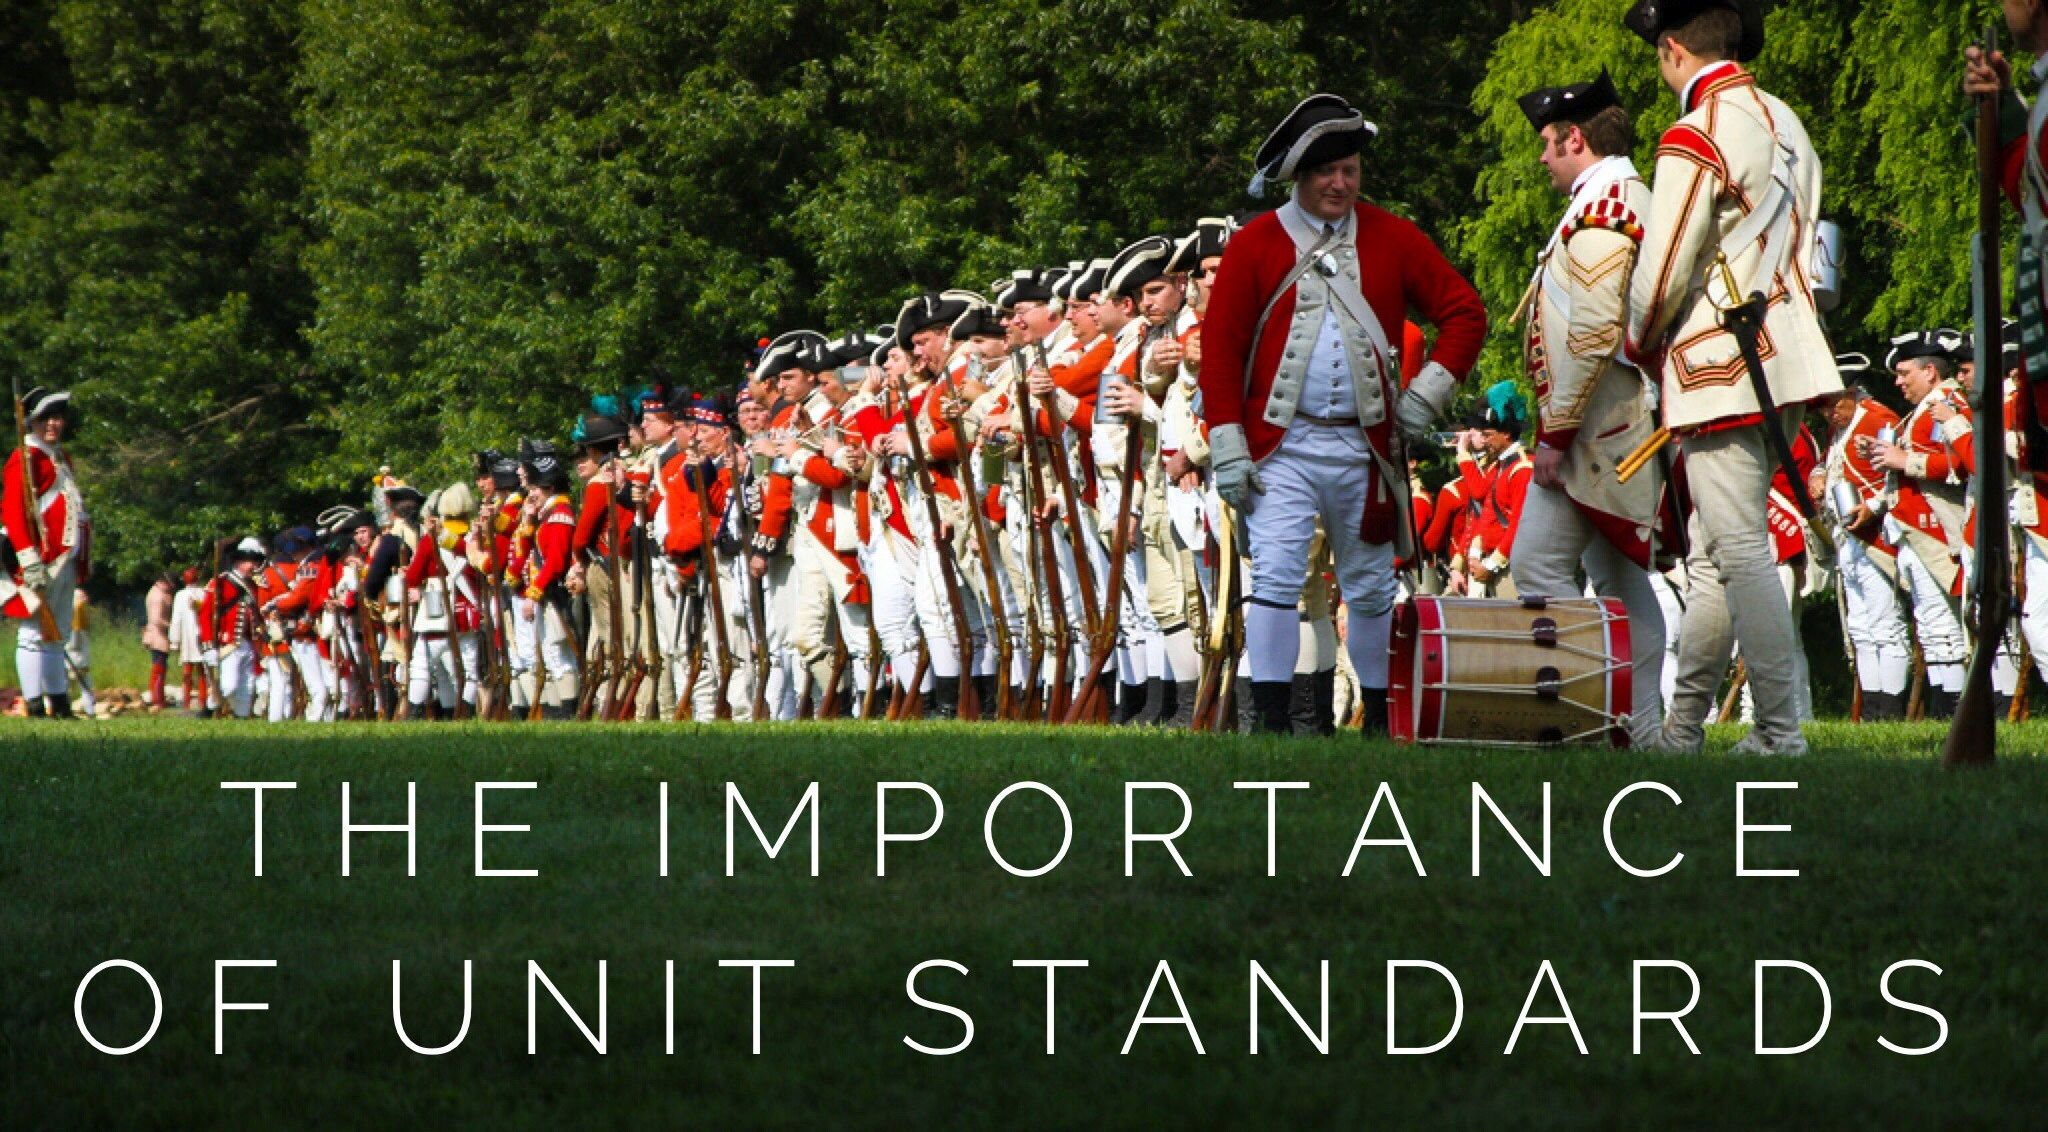 The importance of unit standards - Historically Speaking